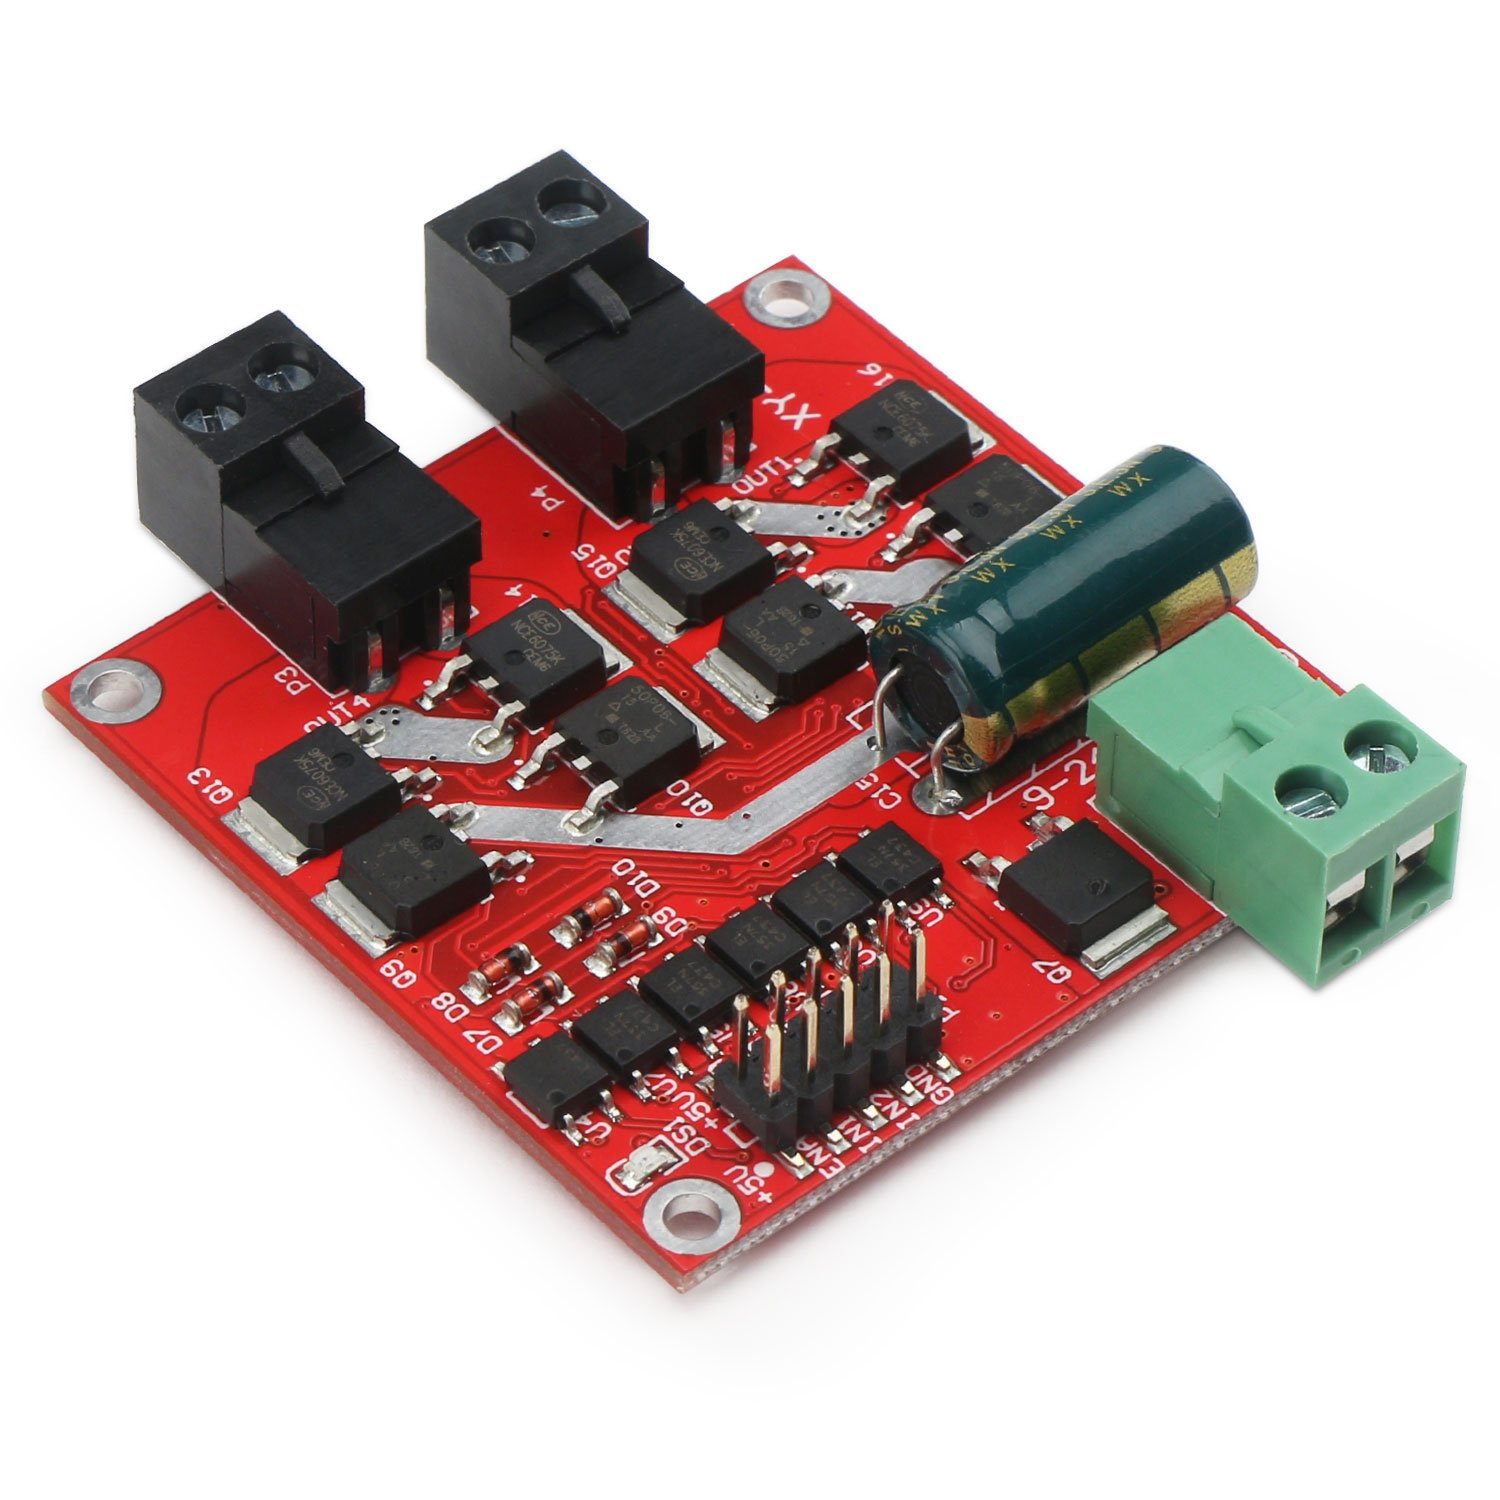 DC Motor Driver, DROK L298 Dual H Bridge Motor Speed Controller DC 6.5V-27V 7A PWM Motor Regulator Board 12V 24V Electric Motor Control Module Industrial 160W with Optocoupler Isolation by DROK (Image #5)